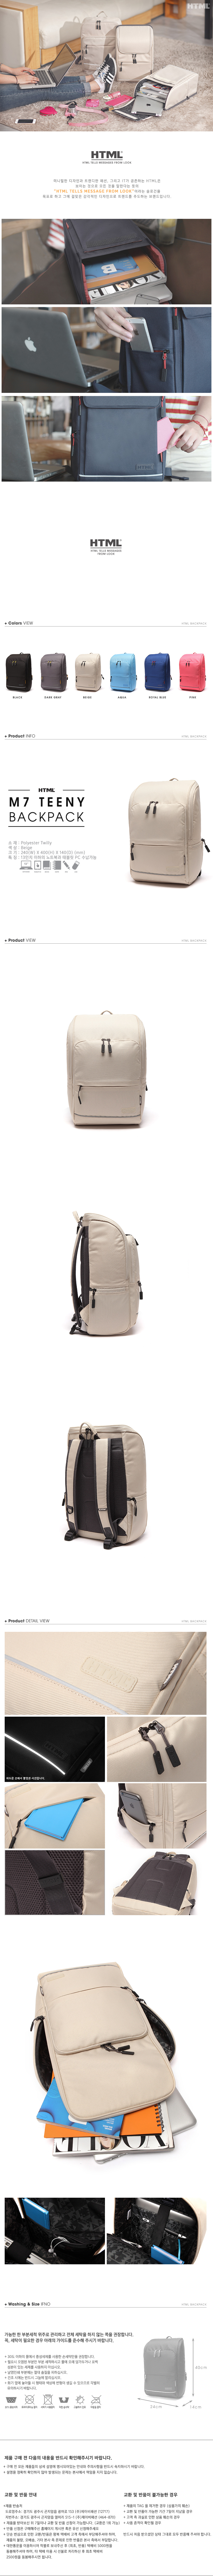 [에이치티엠엘]HTML-M7 WOMAN TEENY (2015) Backpack (BEIGE) 티니 백팩